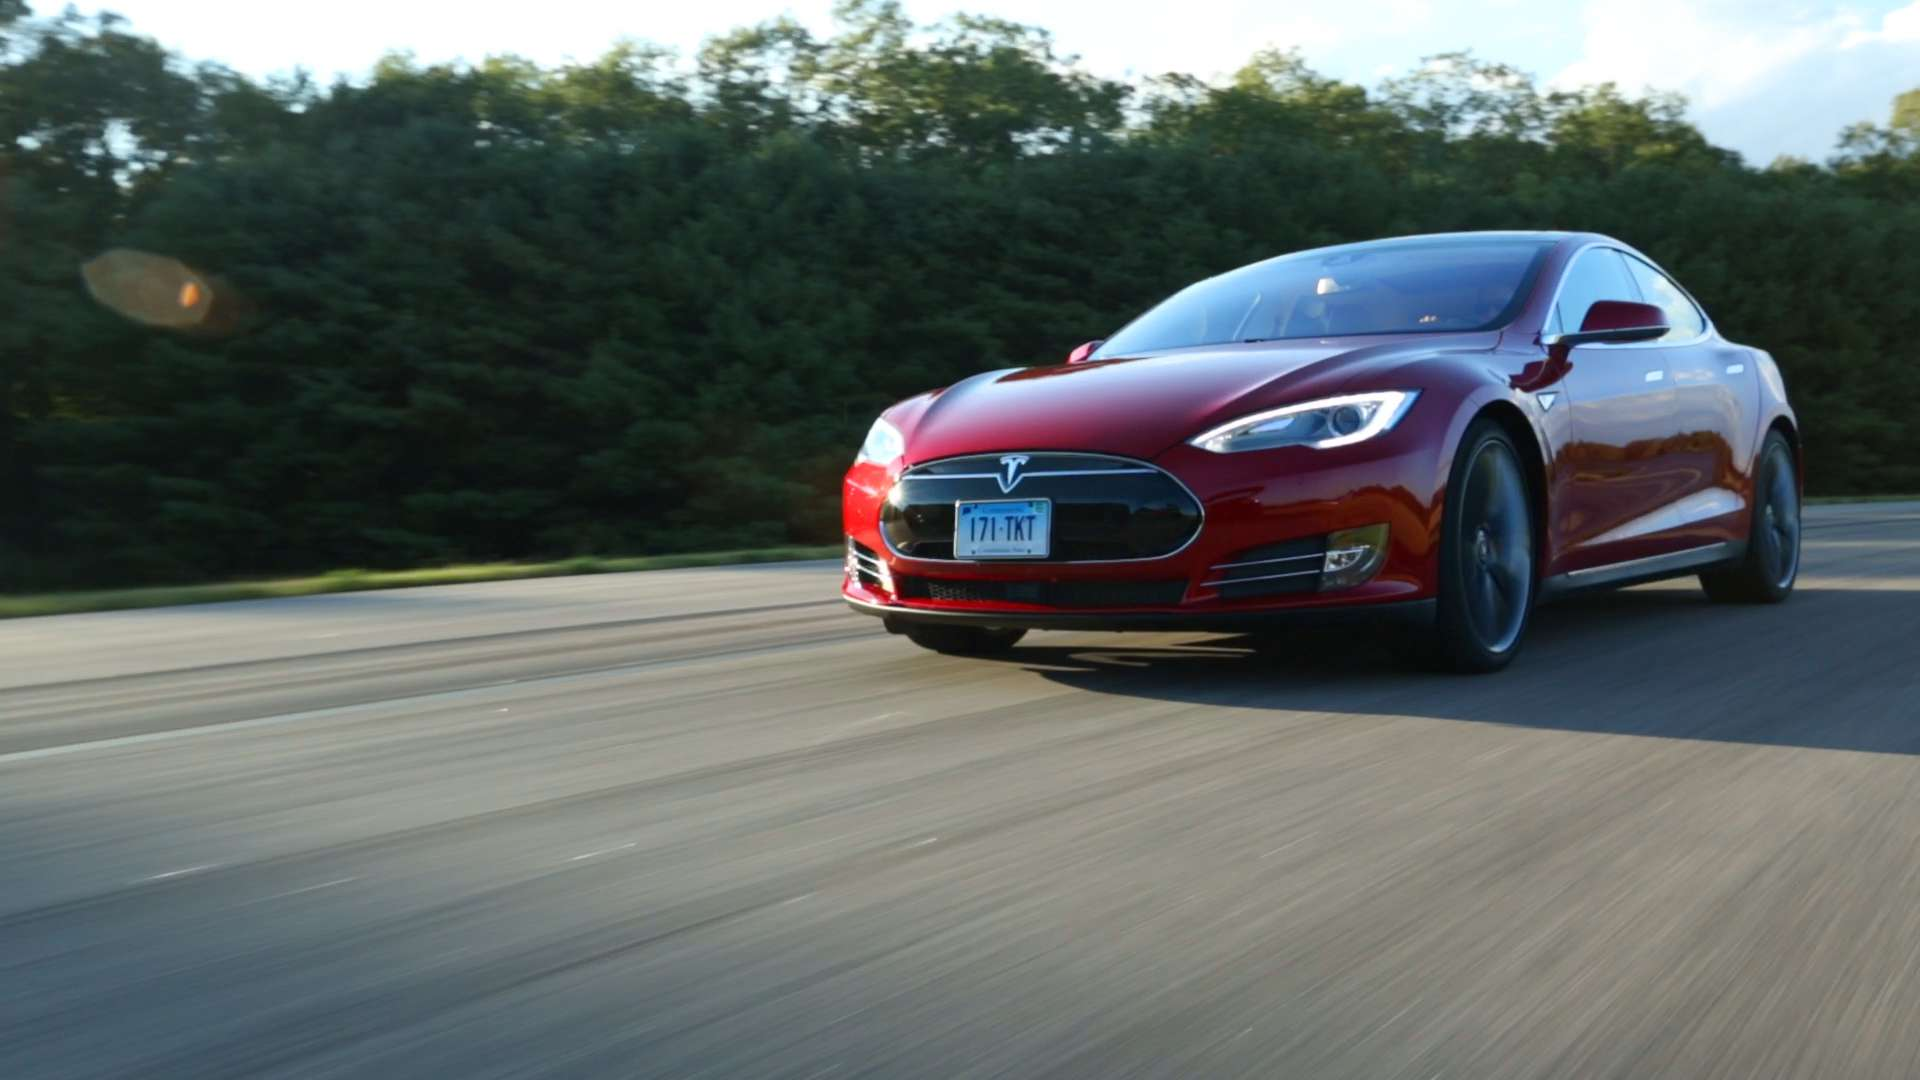 Tesla Reliability Doesn't Match Its High Performance - Consumer Reports